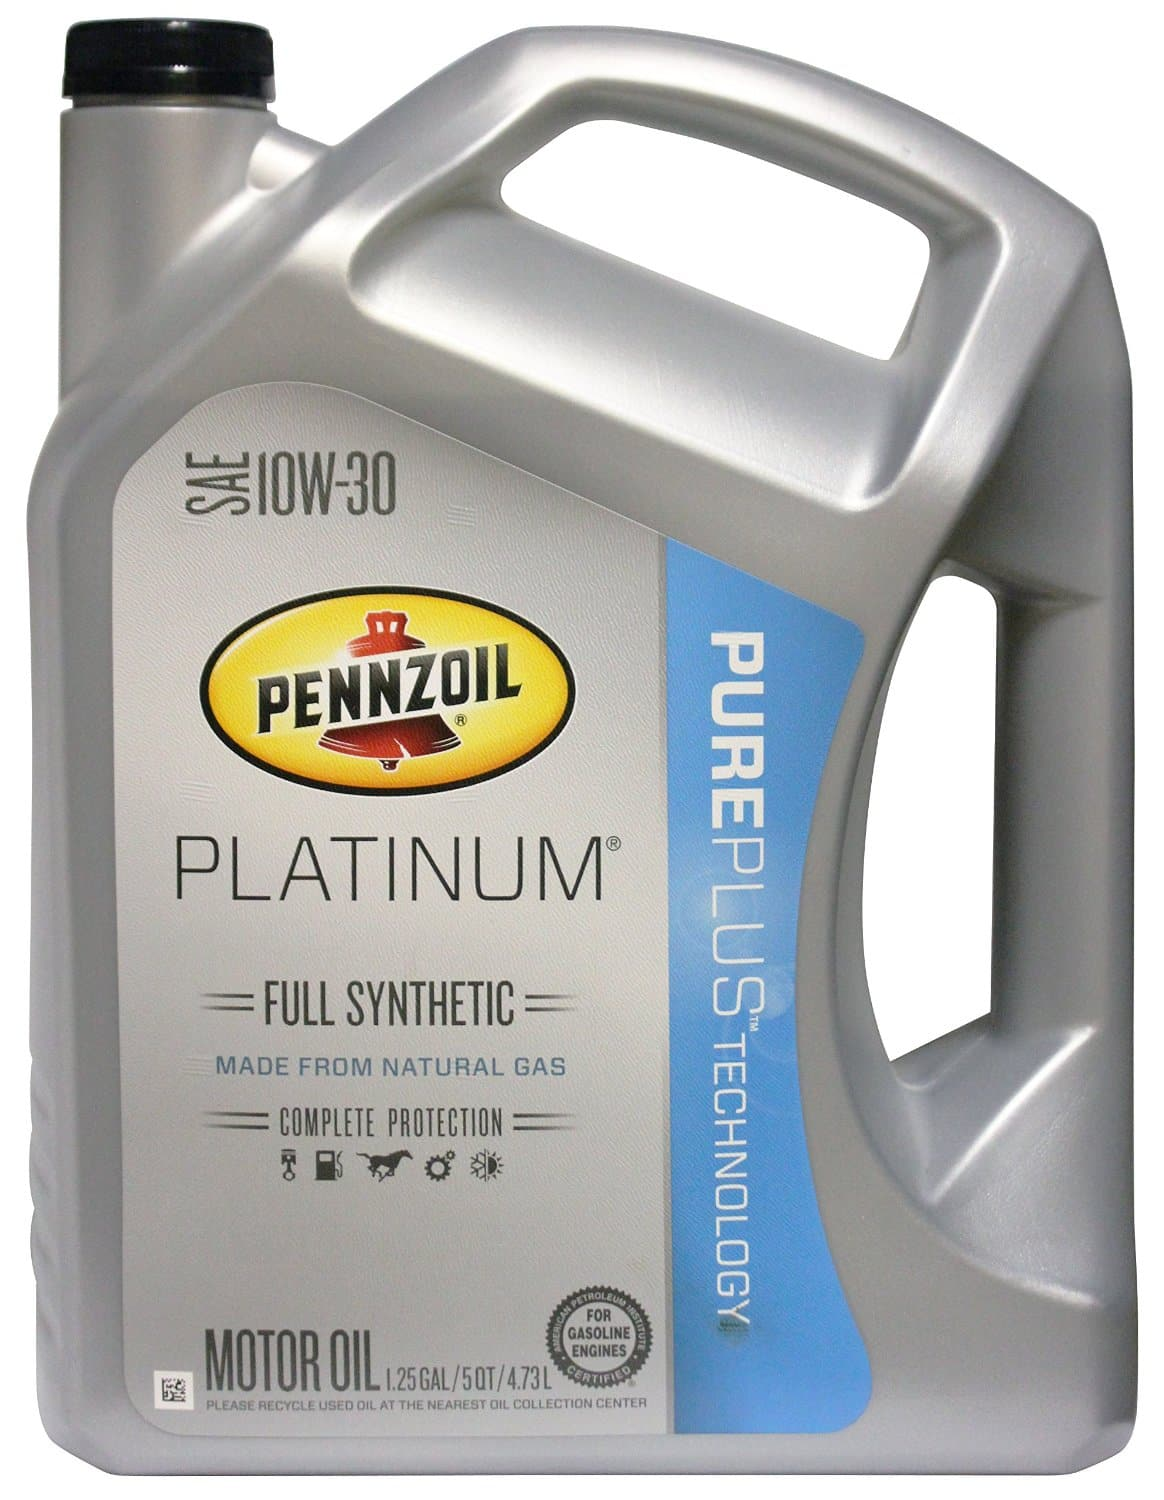 Prime members 5 quart pennzoil platinum full synthetic for Pennzoil platinum 5w 20 synthetic motor oil